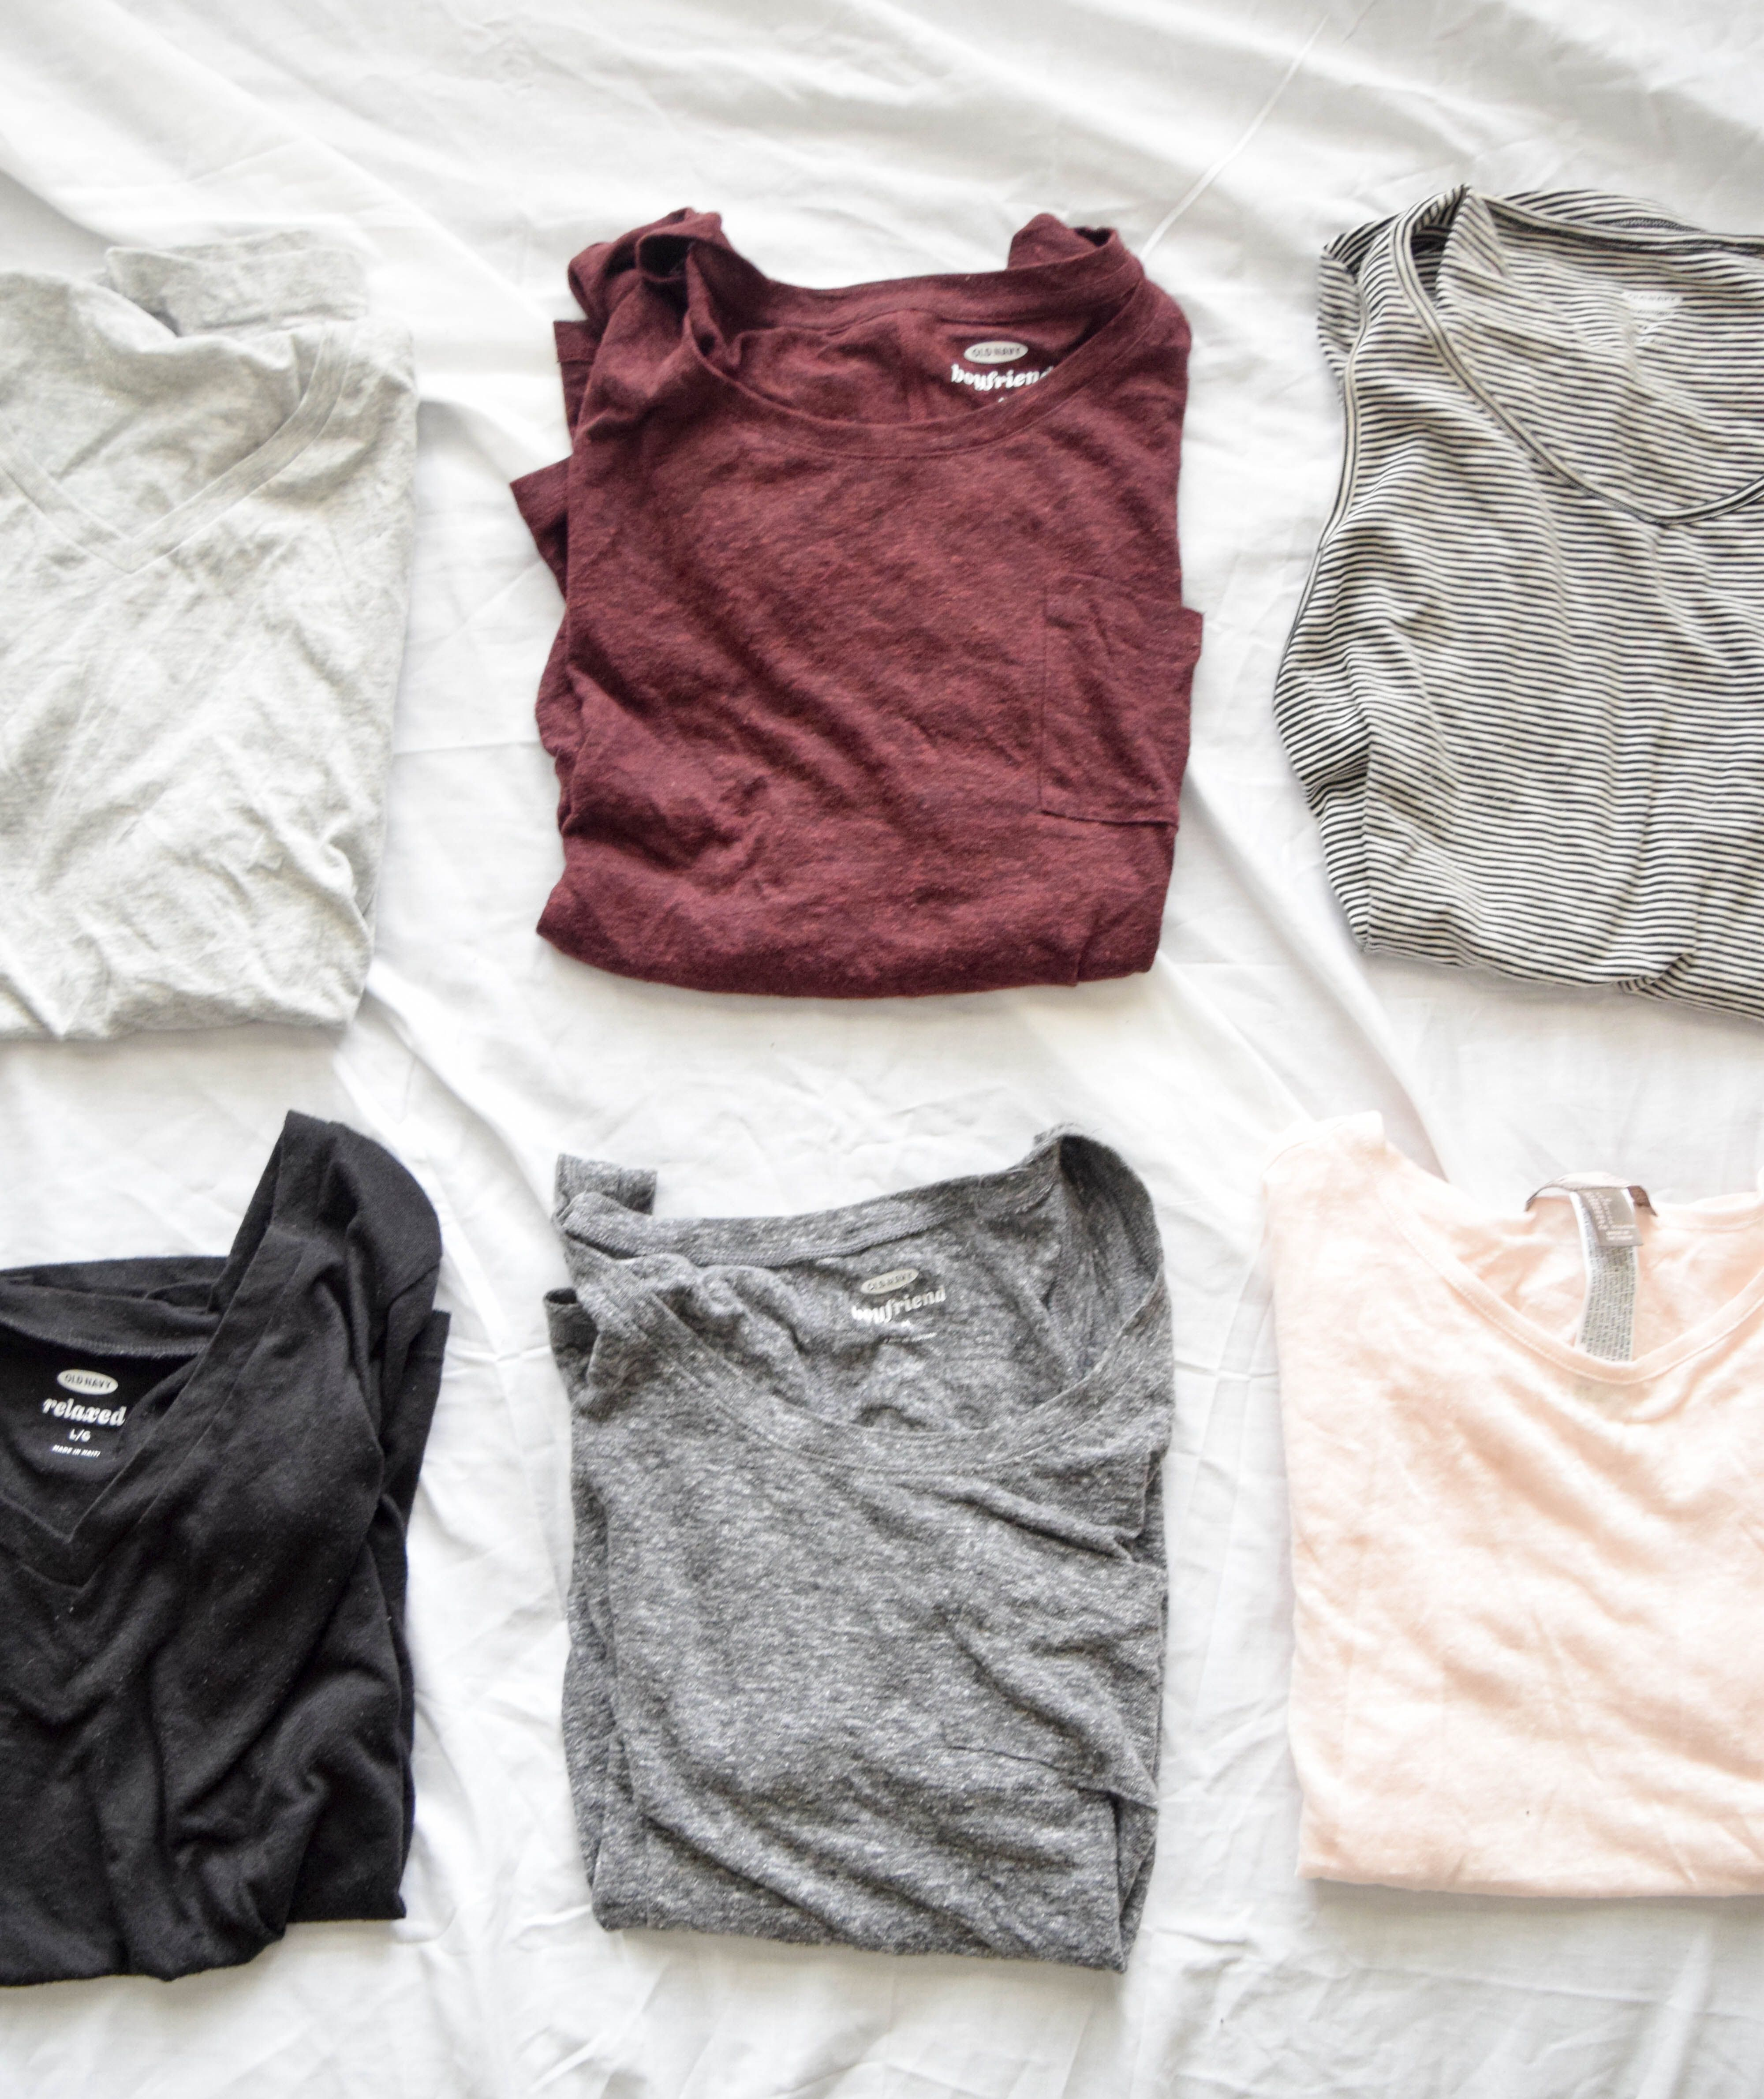 I'm too indecisive to actually try a capsule wardrobe, but if I had to, this would be it. To see what else I'd choose, check out the blog.